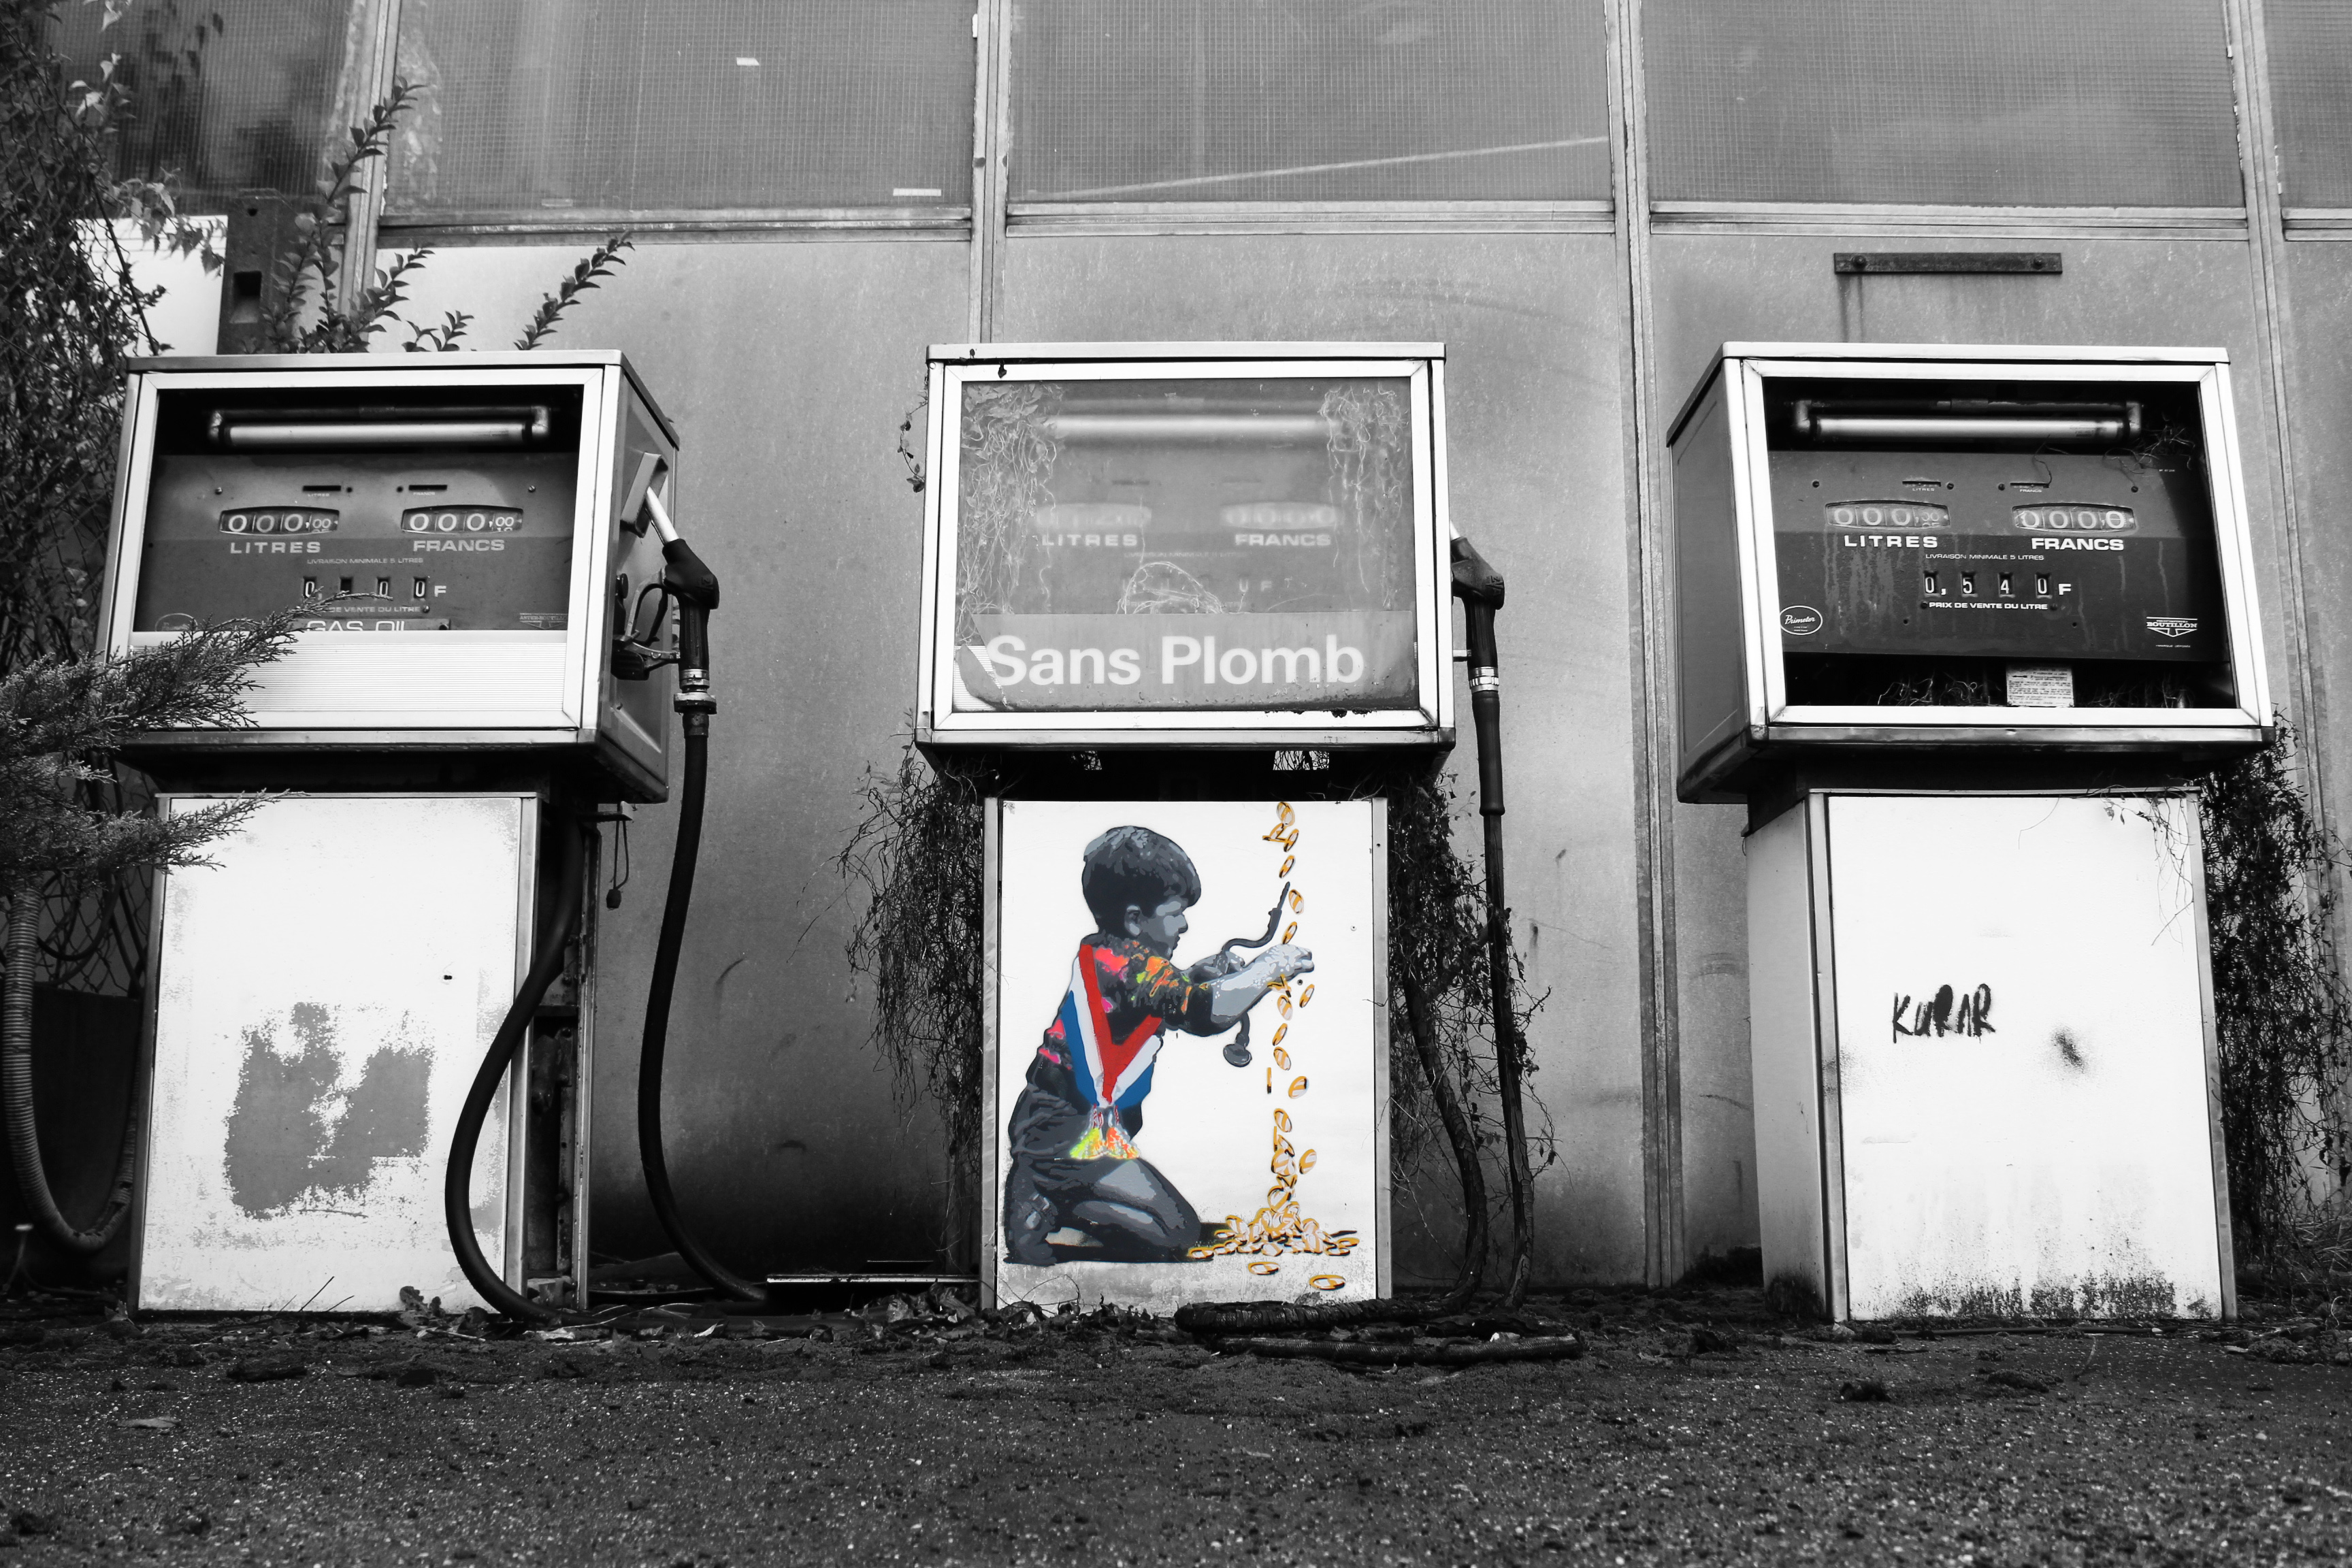 kurar street art 'cash machine""